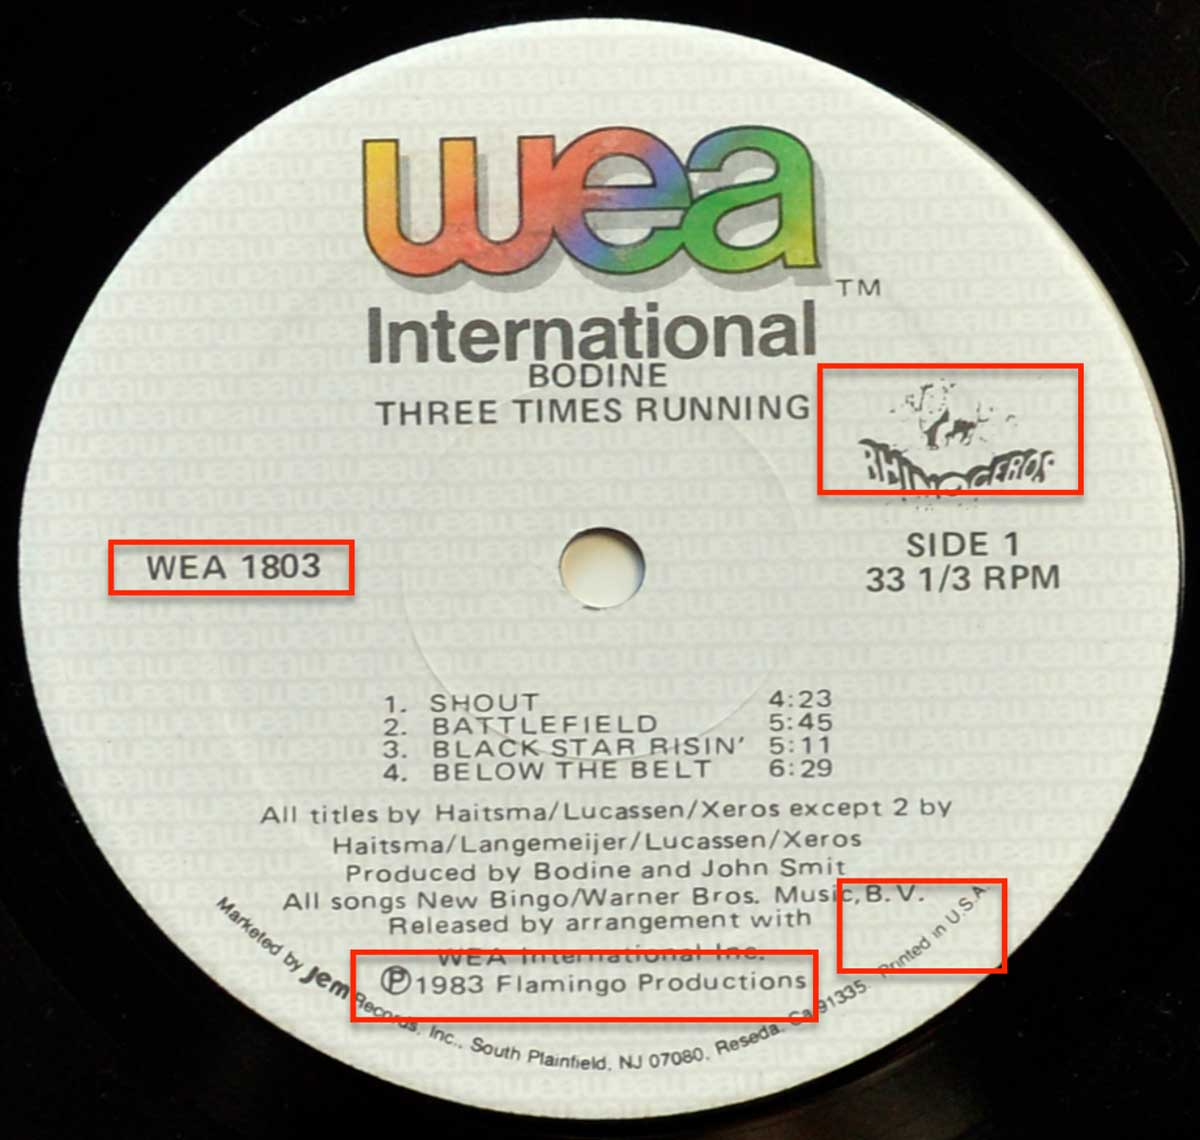 Close up of the White WEA International record's label